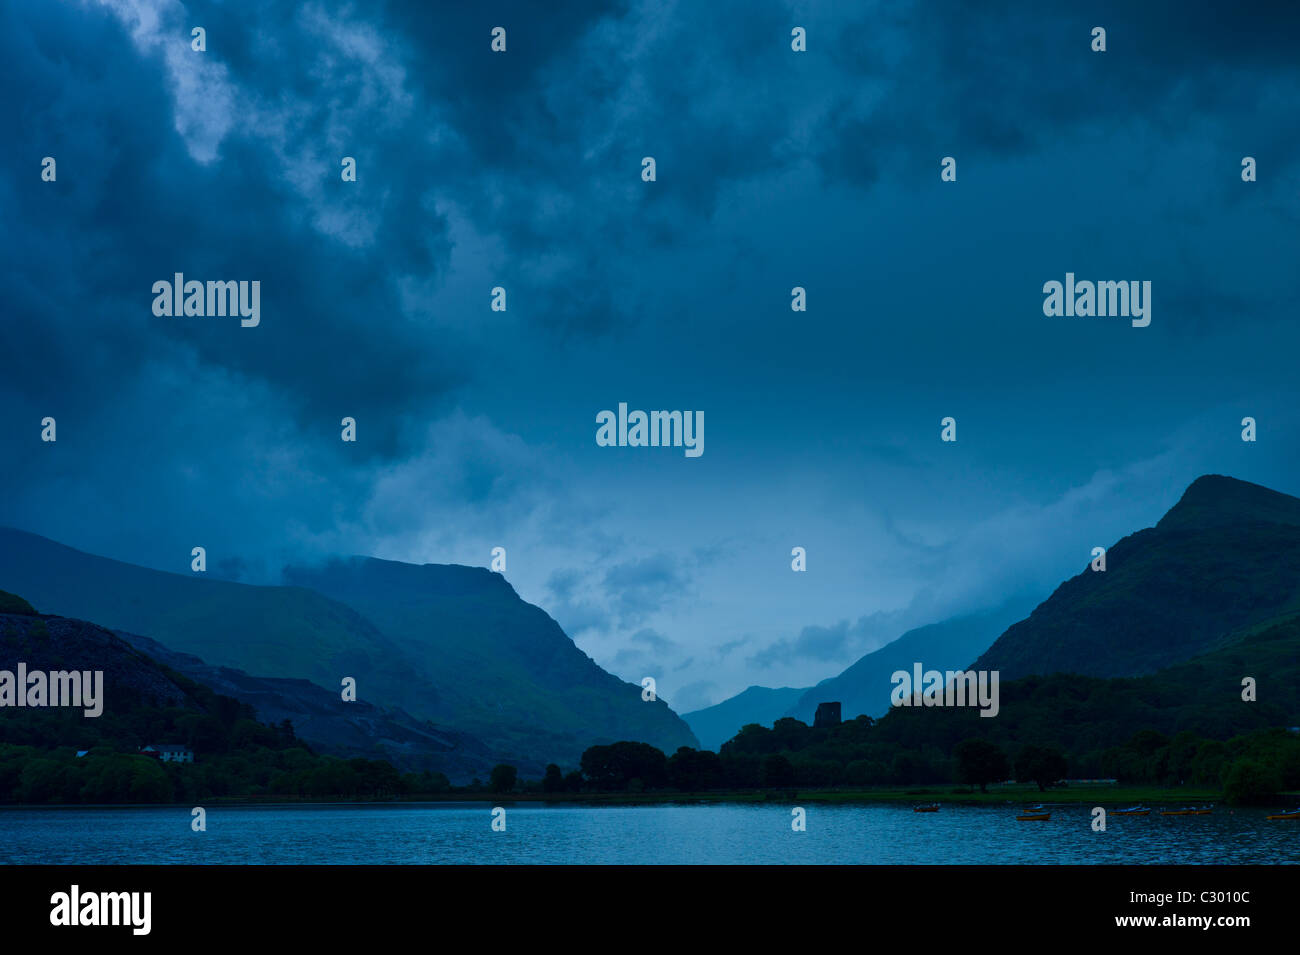 Llanberis Pass with Snowdonia on right, Dolbadarn Castle and Llyn Padarn lake, in Snowdonia National Park, Wales - Stock Image